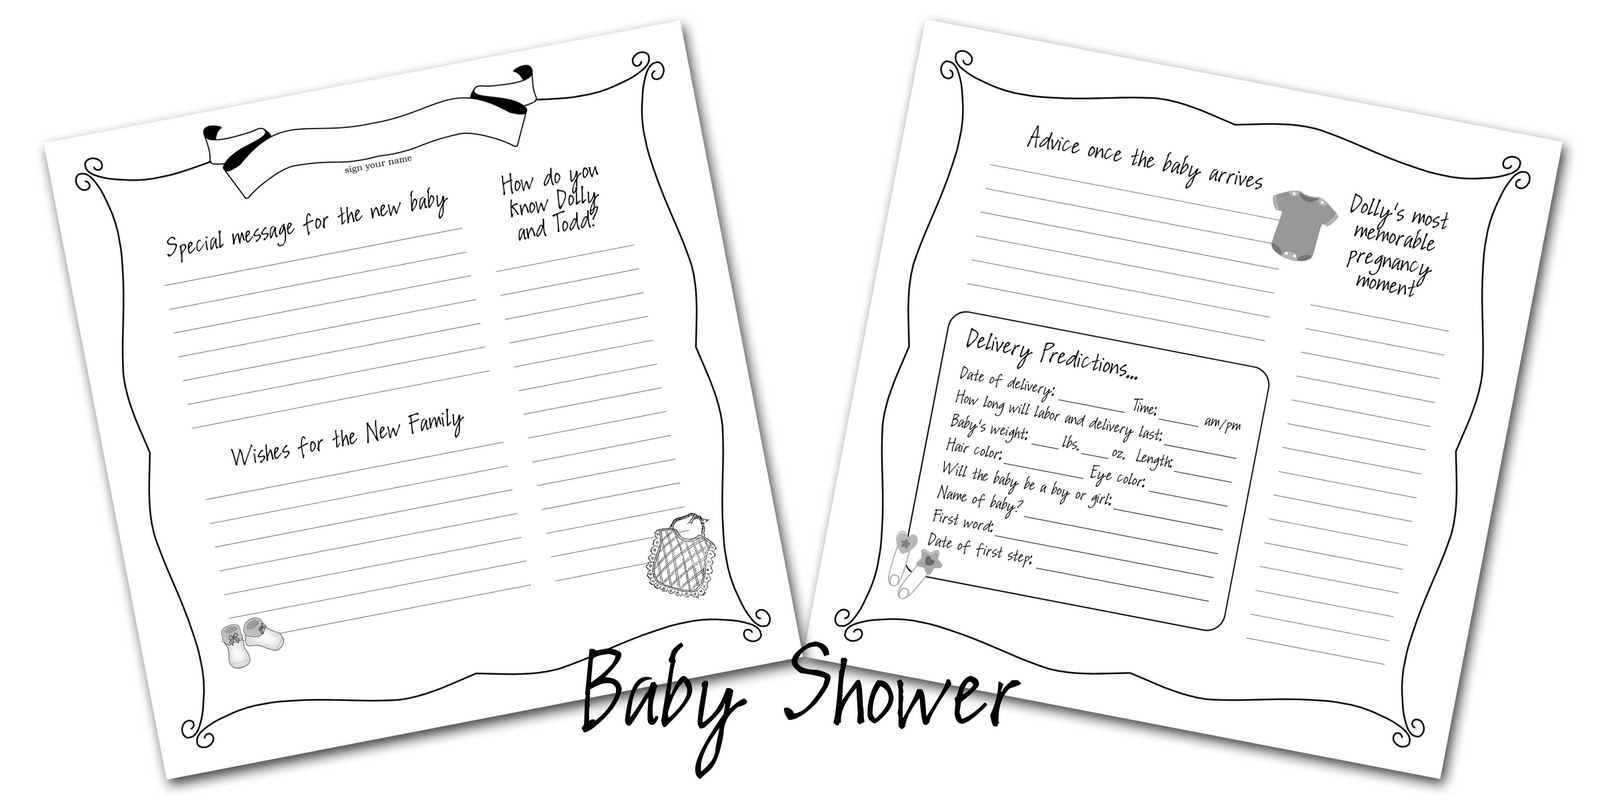 Baby Shower Guest Book Template